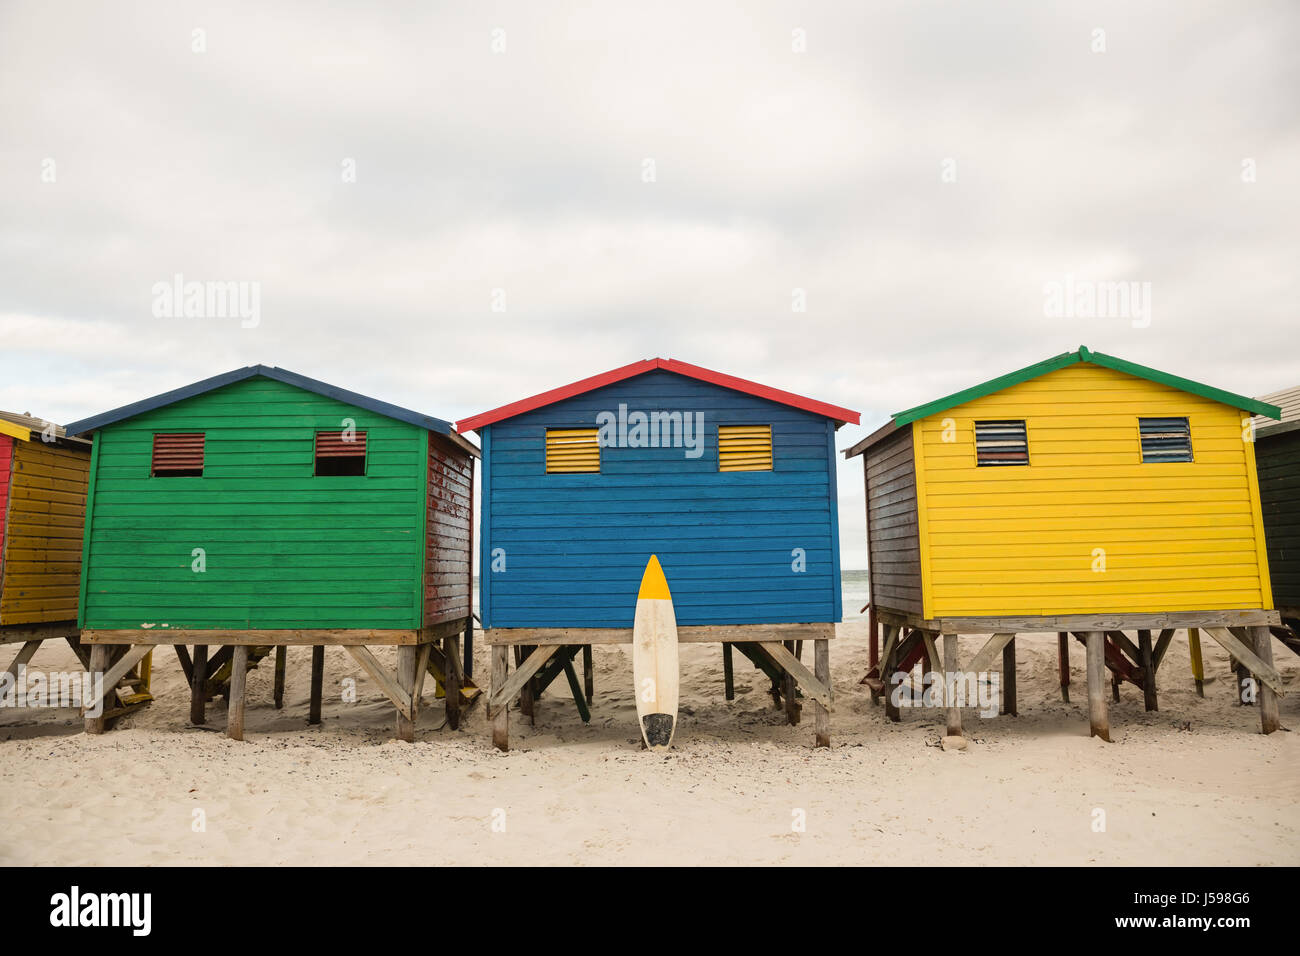 Multi colored wooden huts on sand at beach - Stock Image